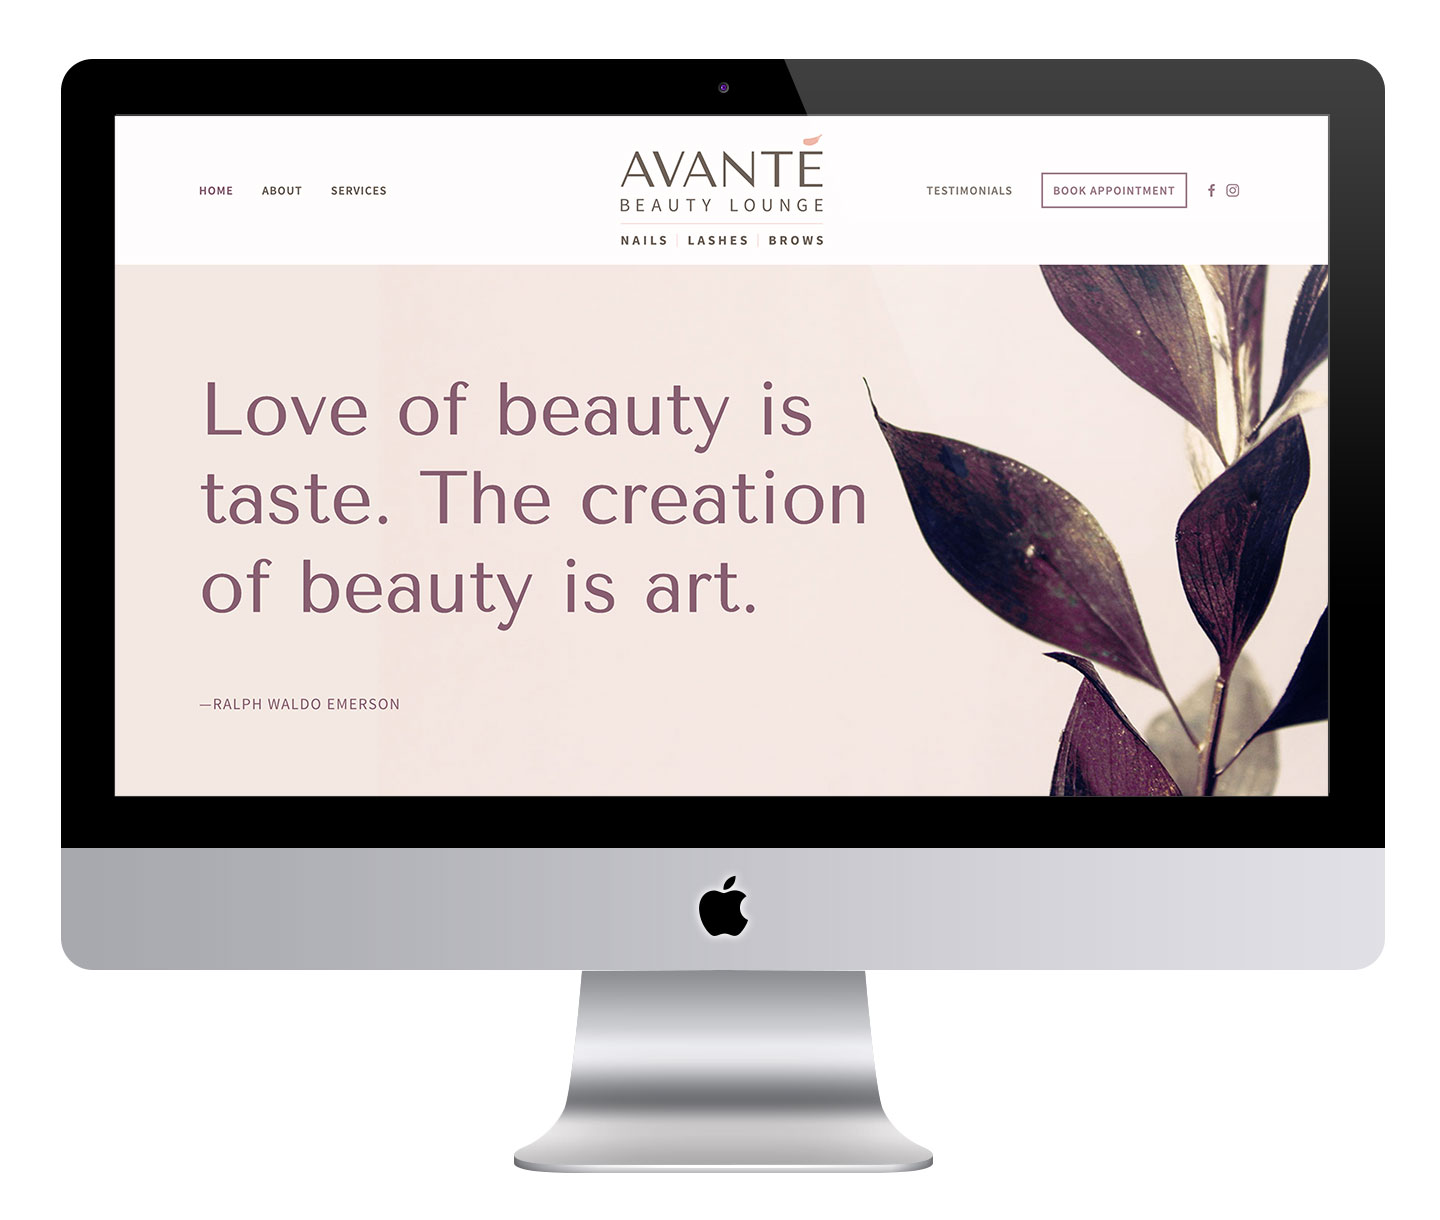 avante-beauty-lounge-website-design-1.jpg